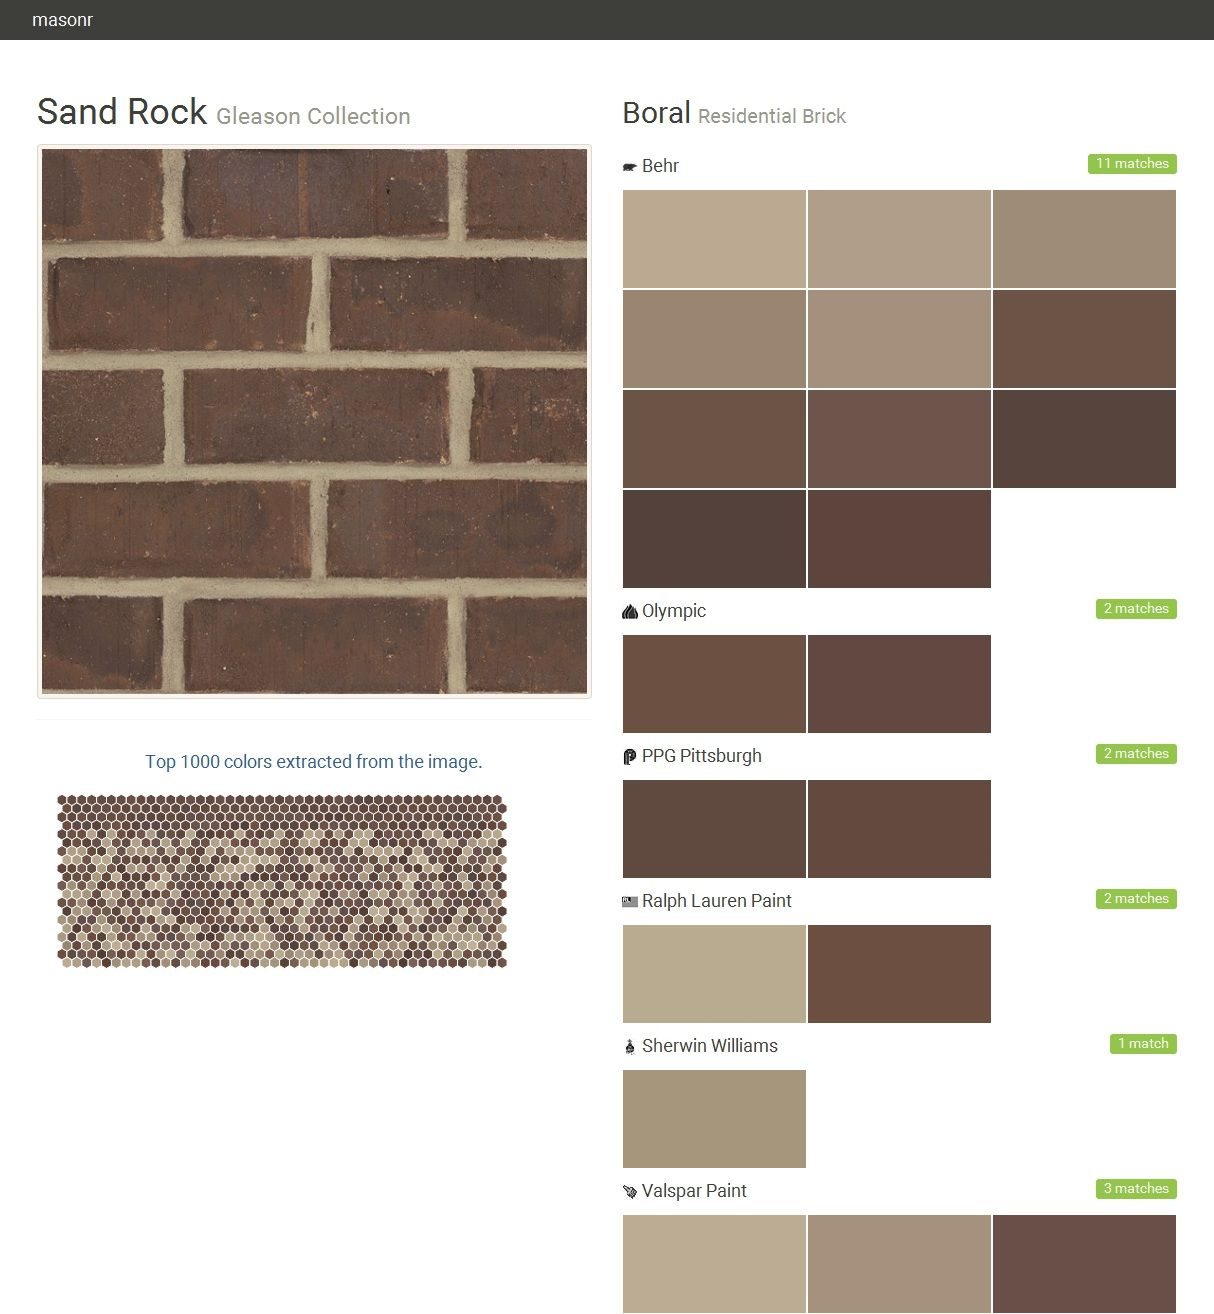 Exterior · Sand Rock. Gleason Collection. Residential Brick. Boral. Behr.  Olympic. PPG